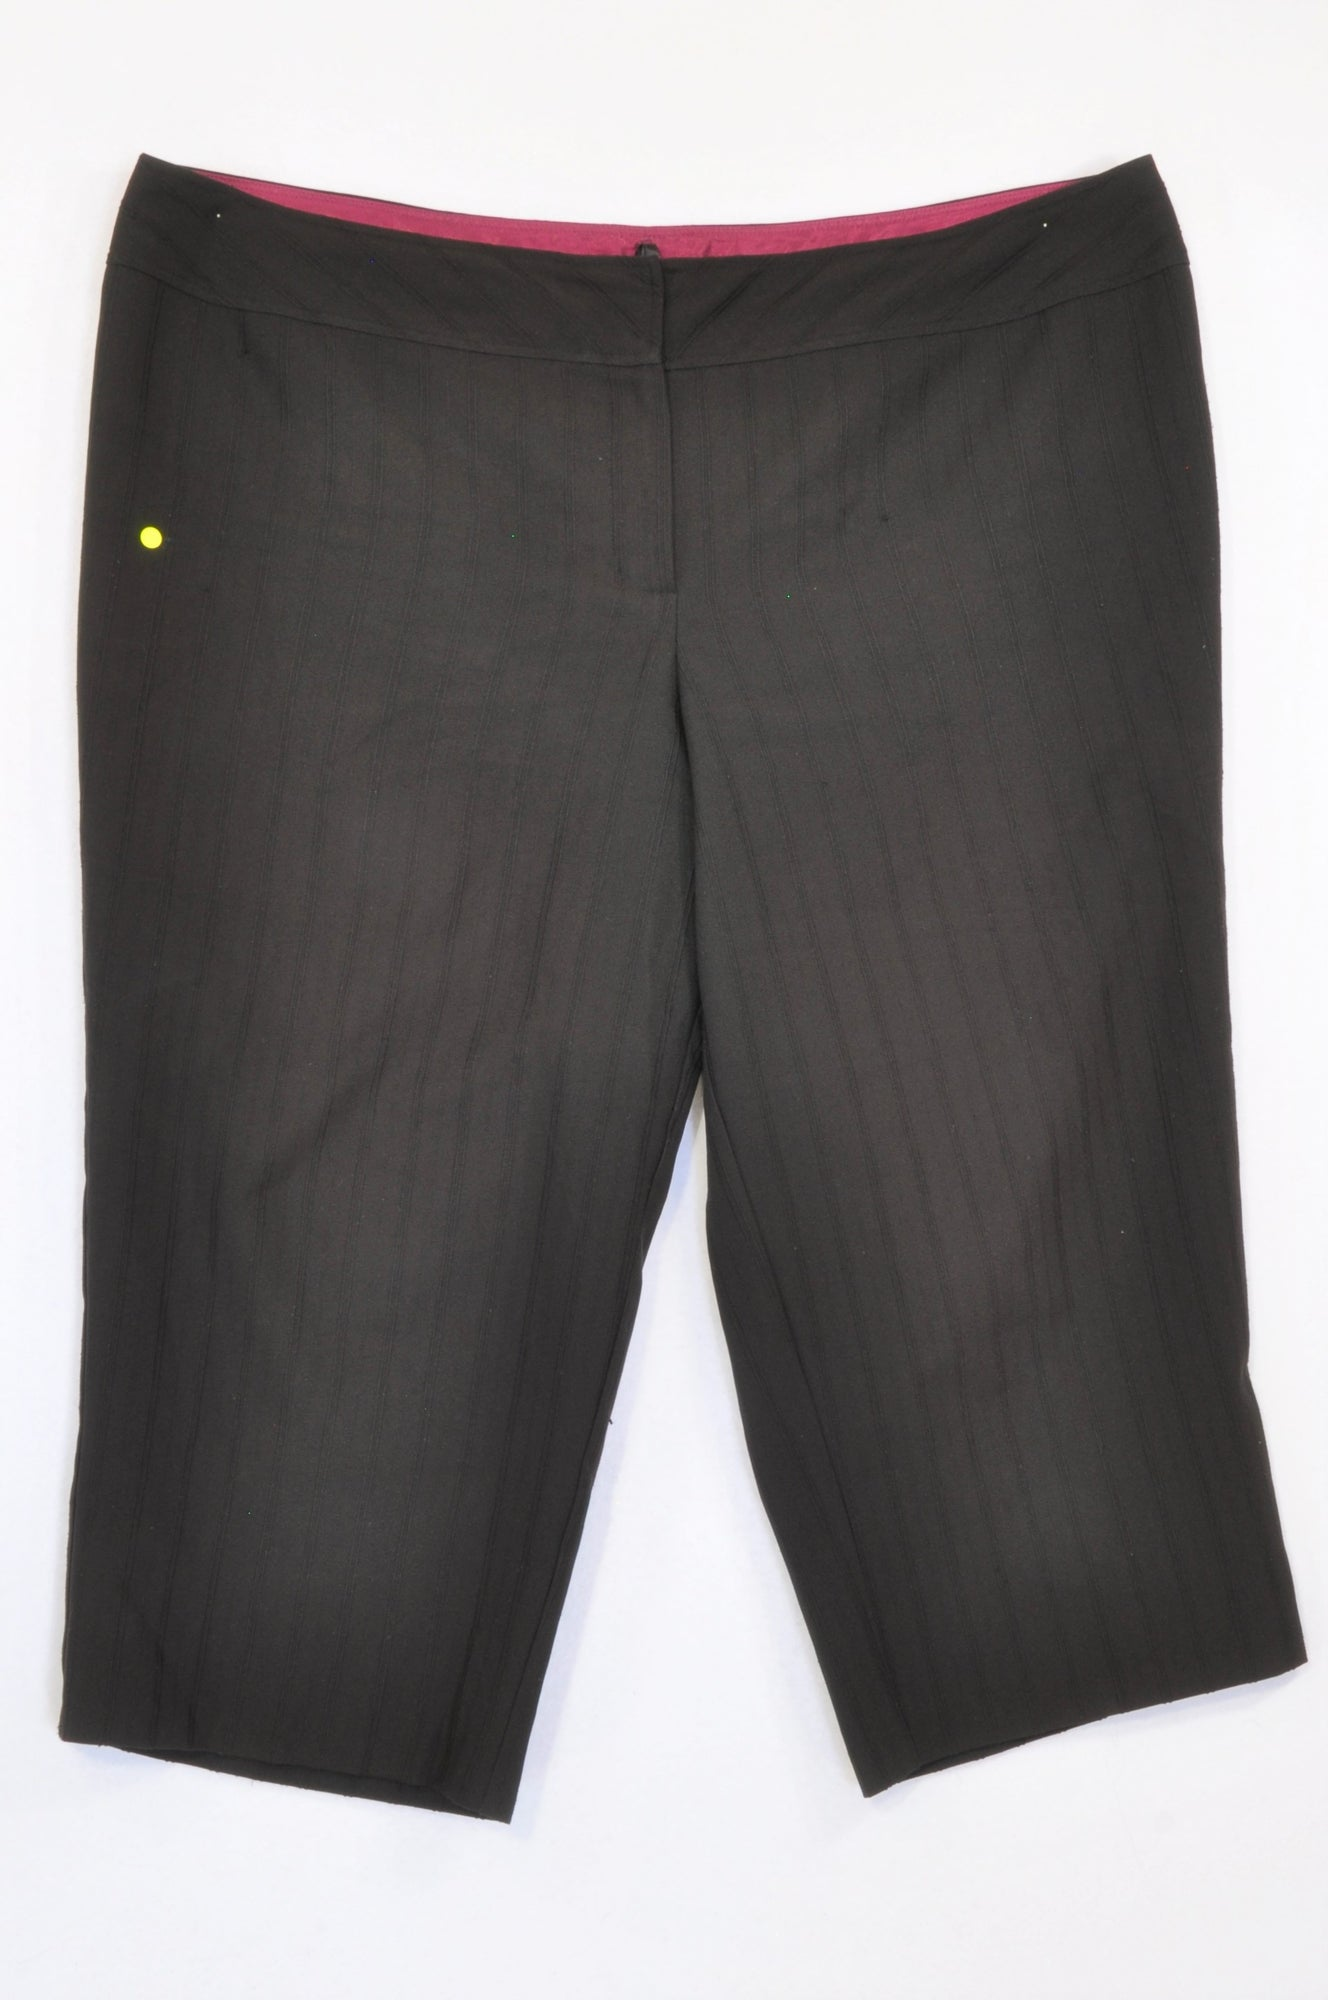 Evans Black Textured Pinstripe Cropped Slack Pants Women Size 20